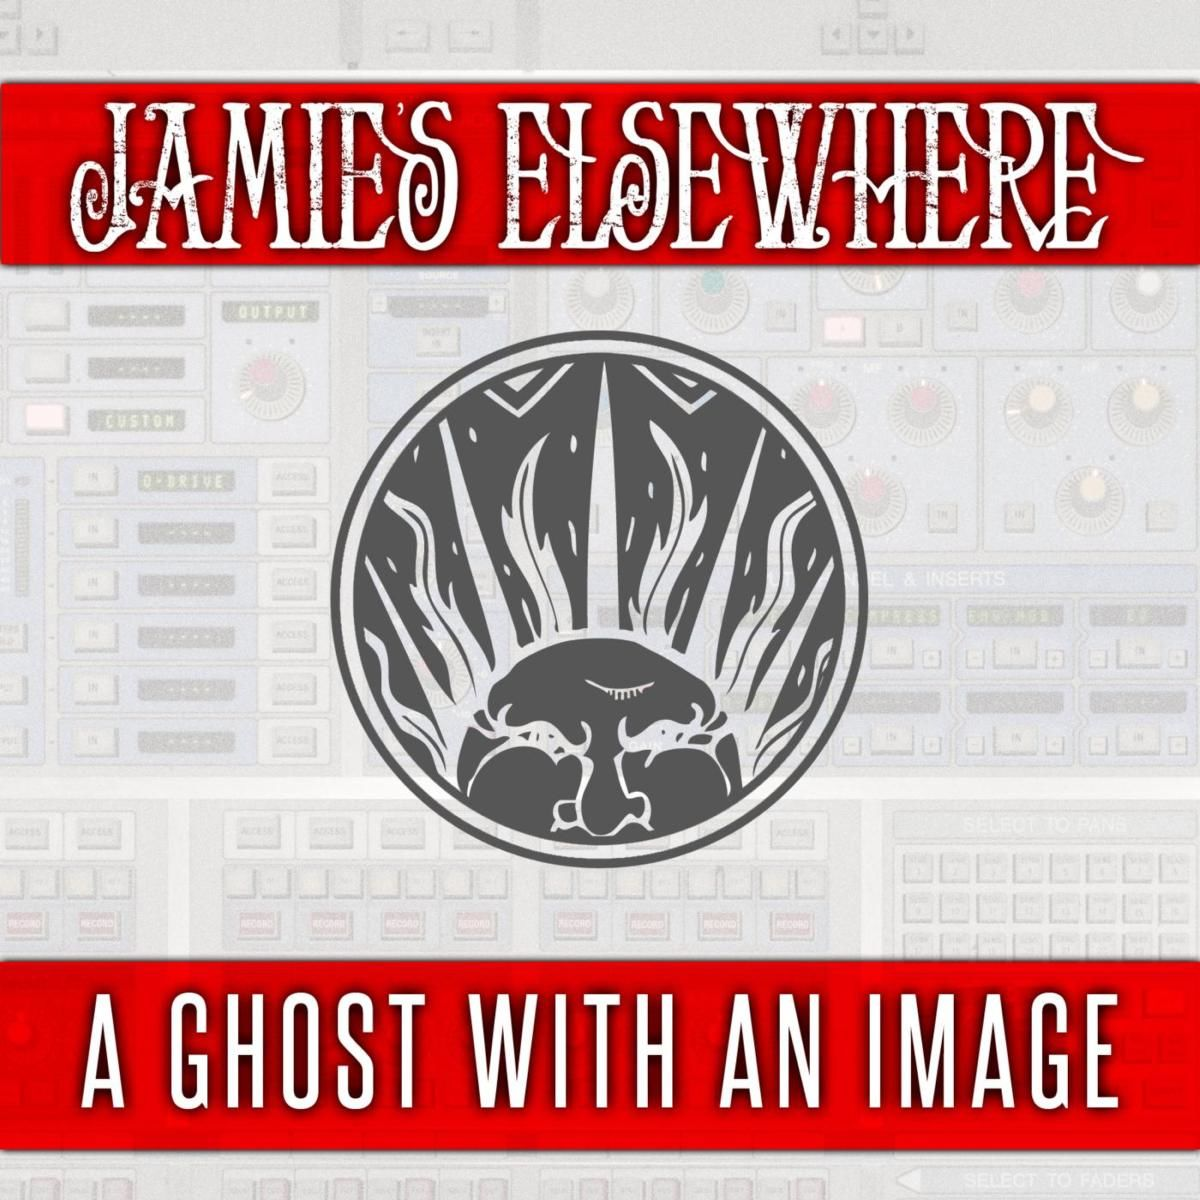 Jamie's Elsewhere - A Ghost with an Image [single] (2012)